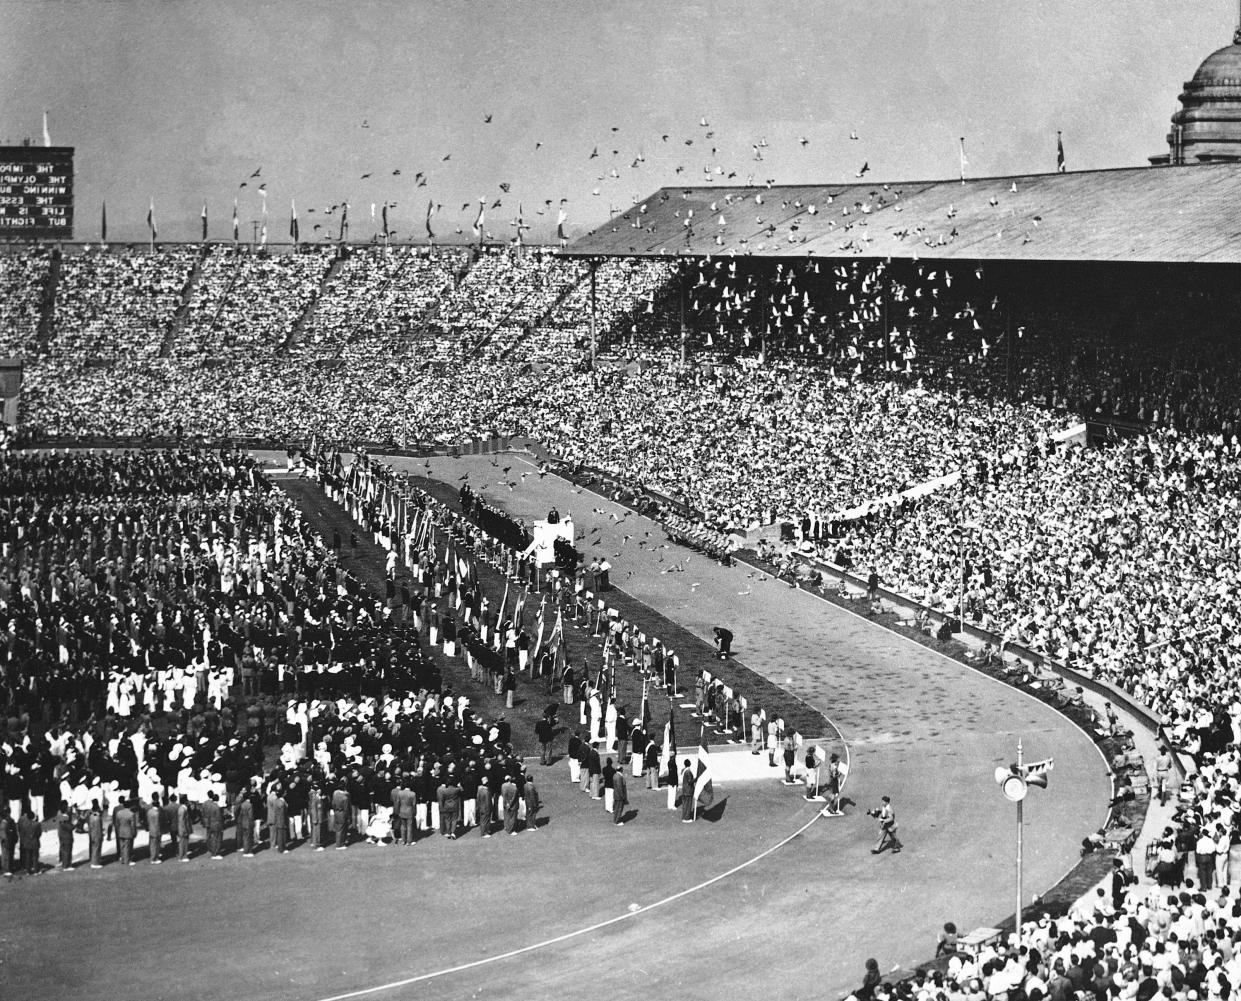 After His Majesty the King declared the 1948 Olympic Games opened, seven thousand pigeons were released, July 29, 1948, at Wembley Stadium in London. In the times of the Ancient Games, the pigeons were used as a signal to warn the Greeks that the Games had begun. (AP Photo/Press Association)